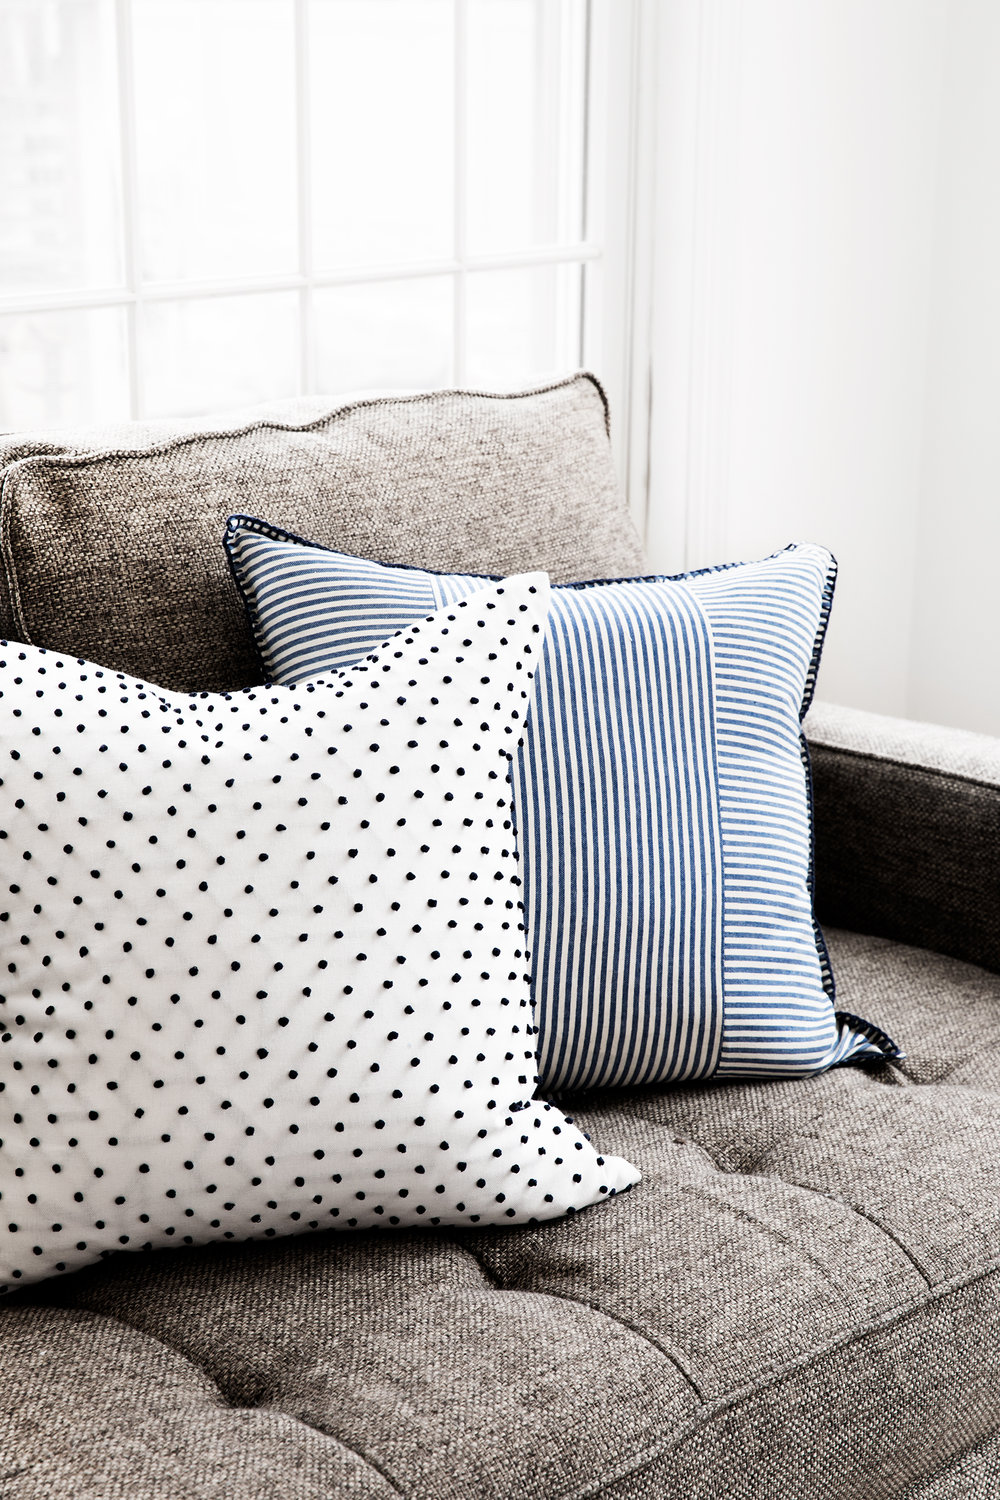 JG_ColorPillowDetails_0270.jpg